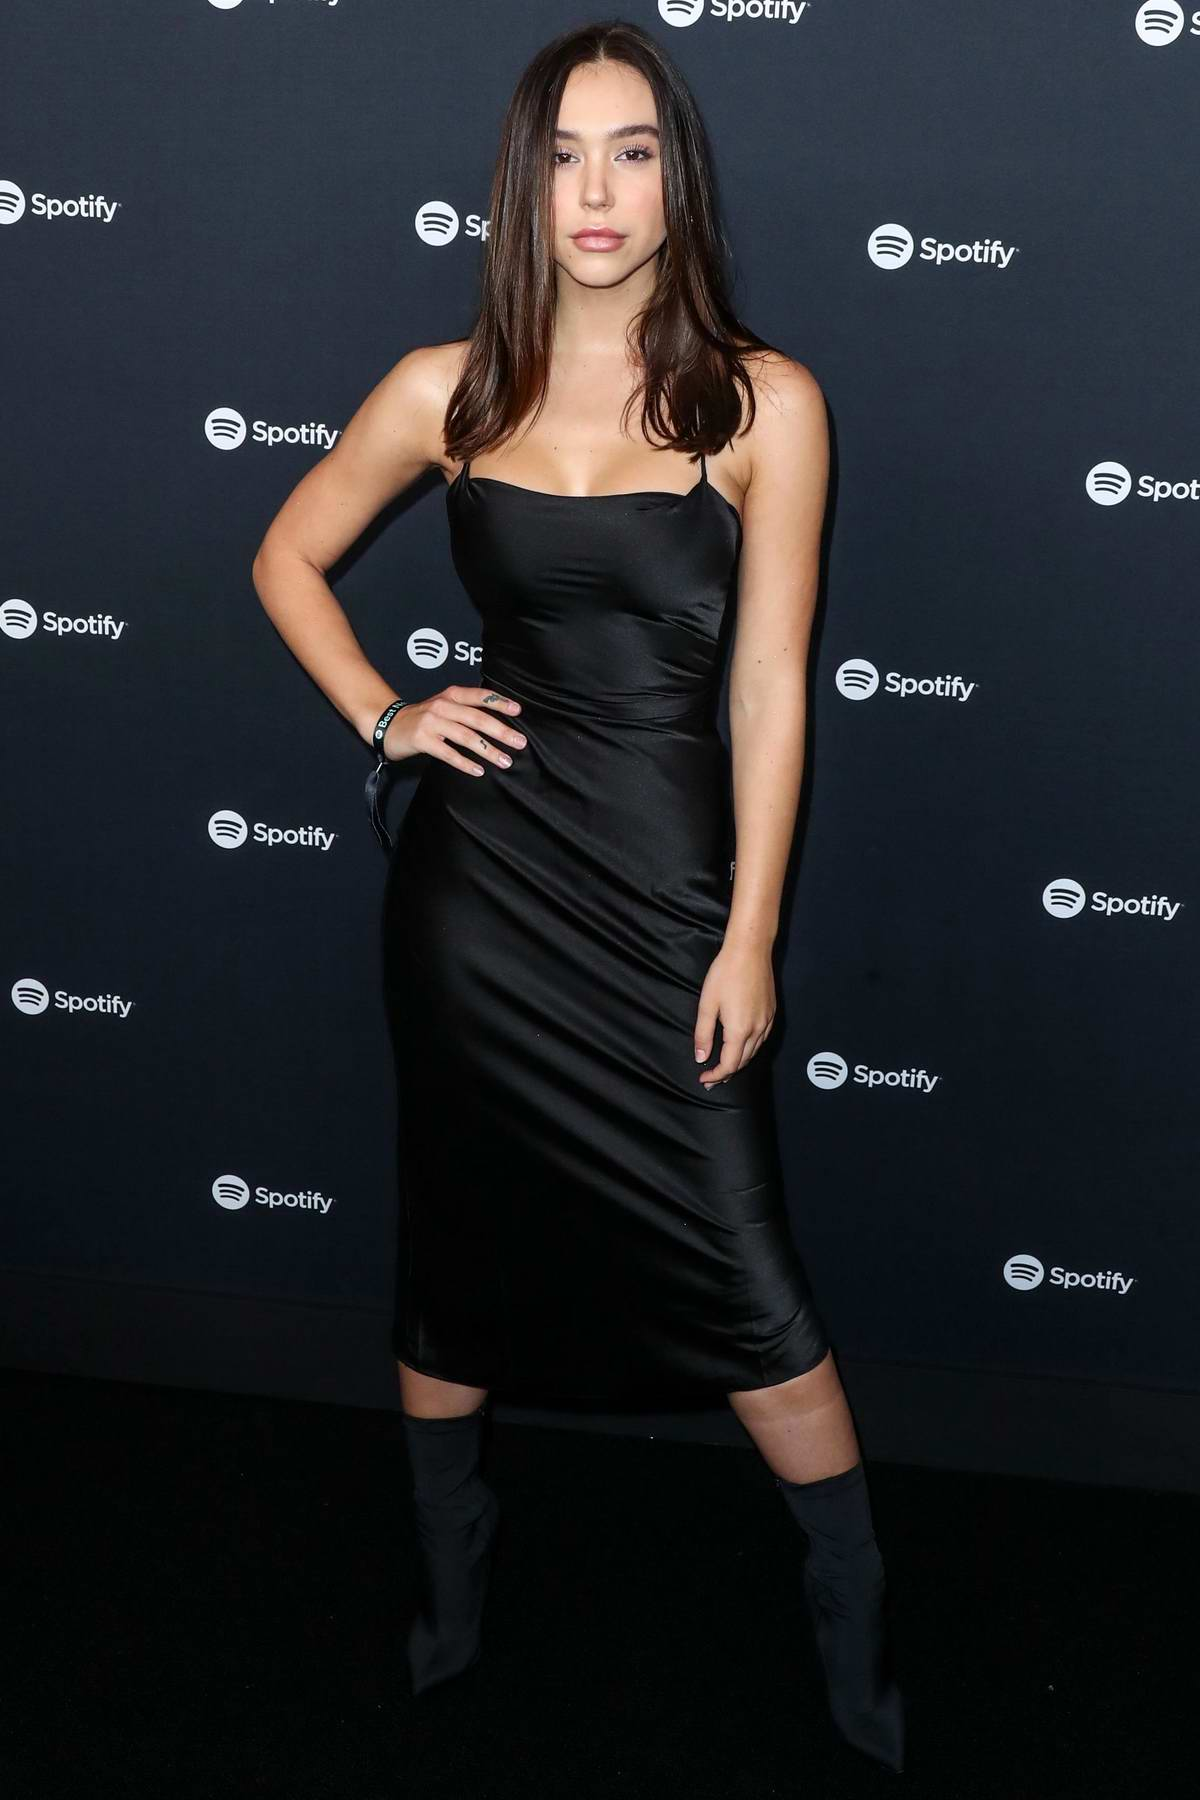 Alexis Ren attends the Spotify 'Best New Artist' Party 2020 in Los Angeles